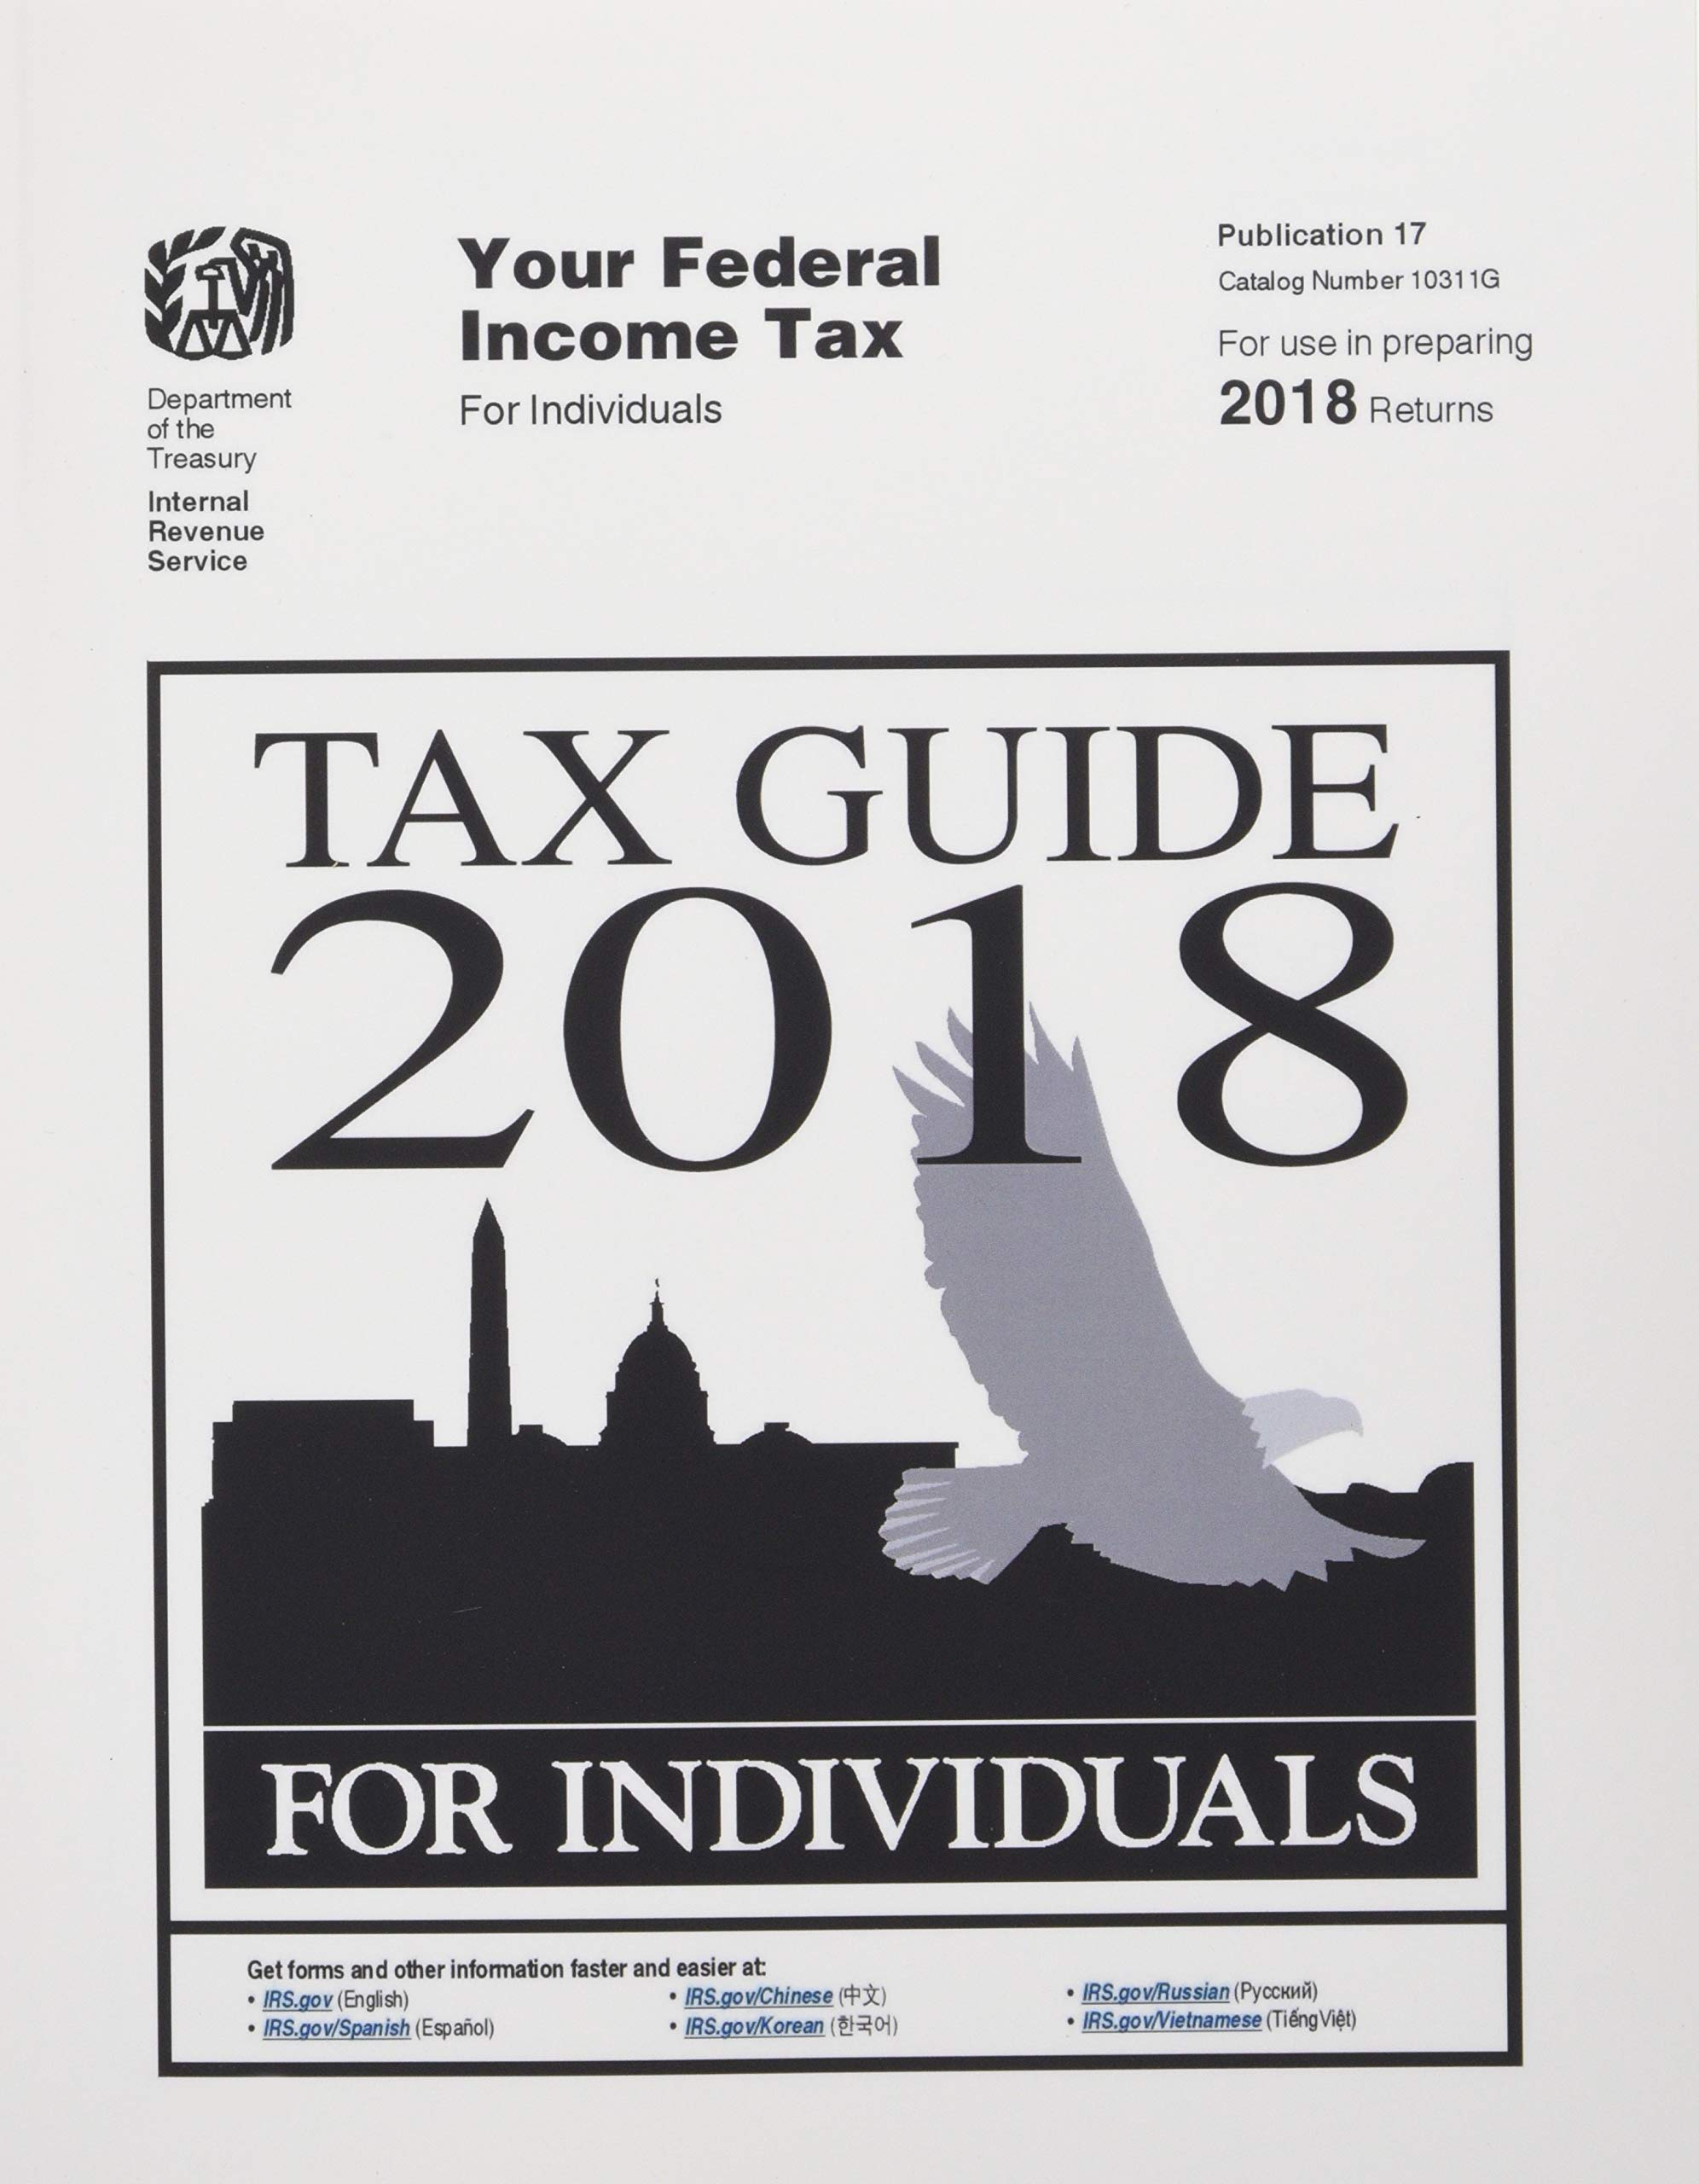 Tax Guide 2018 For Individuals Publication 17 U S Internal Revenue Service Irs 9781796245929 Amazon Com Books